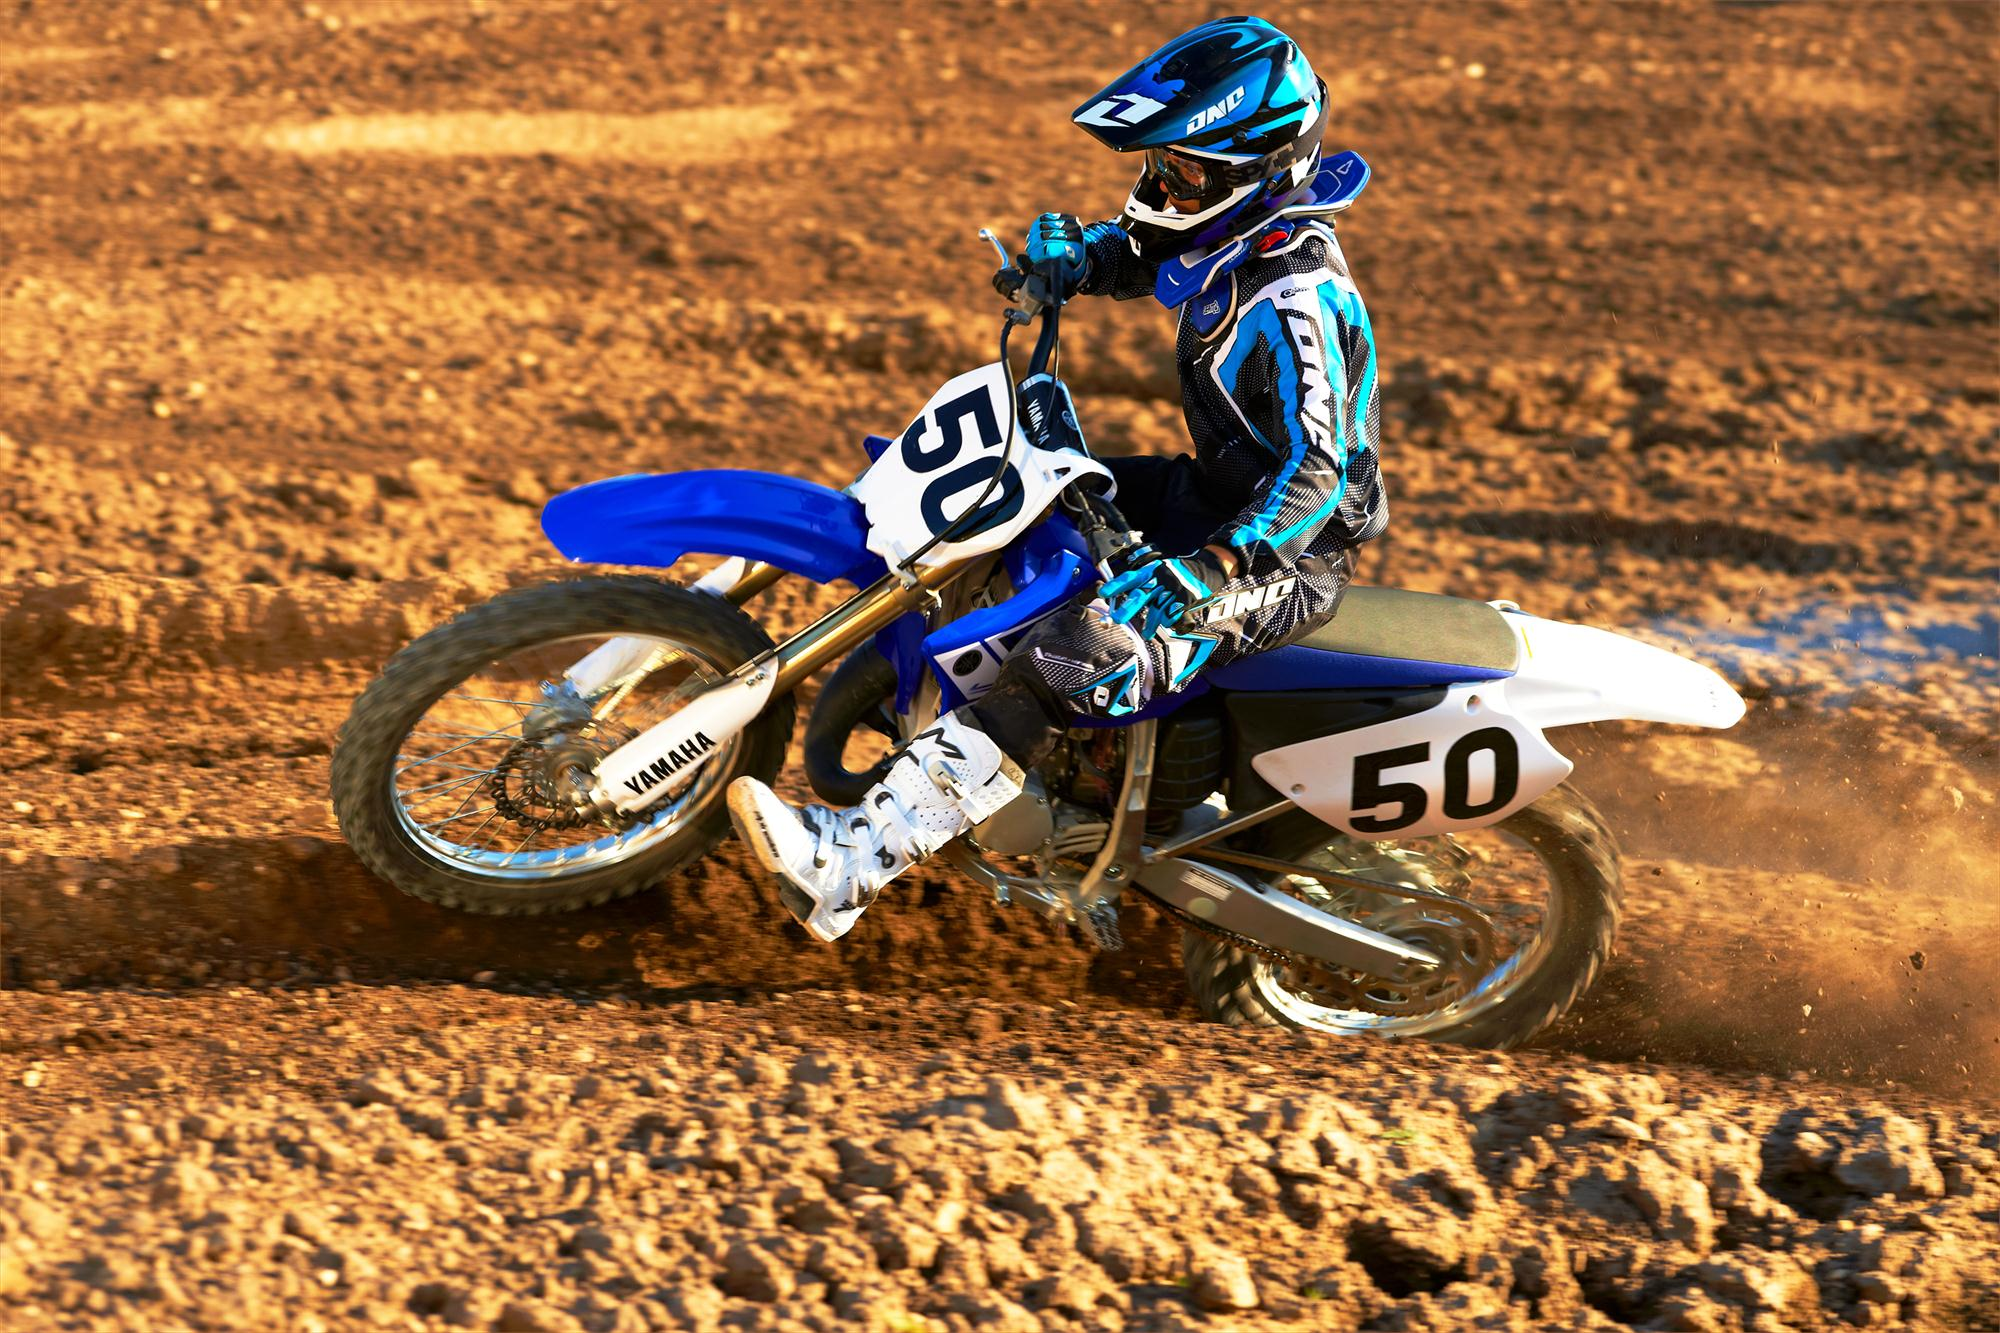 2013 Yamaha Yz125 Race Ready Out Of The Crate Autoevolution